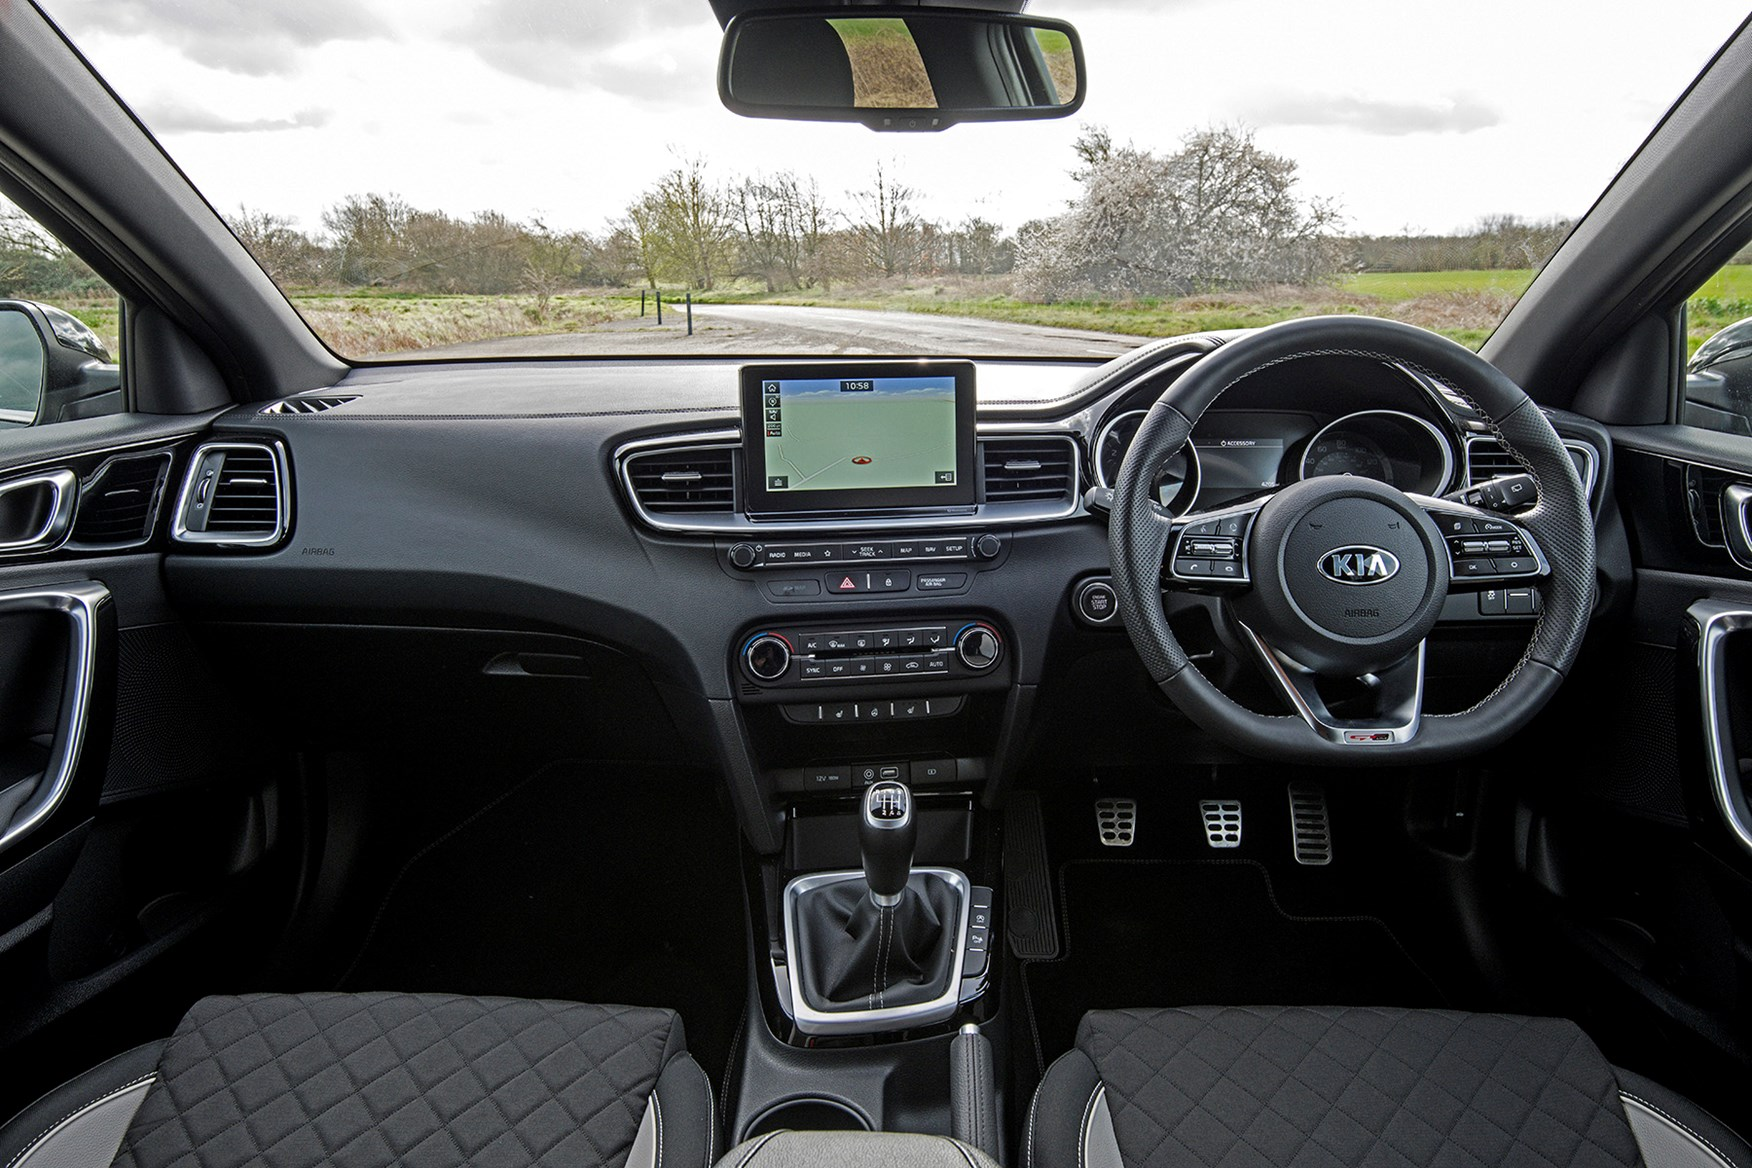 Kia Ceed Review 2020 Parkers